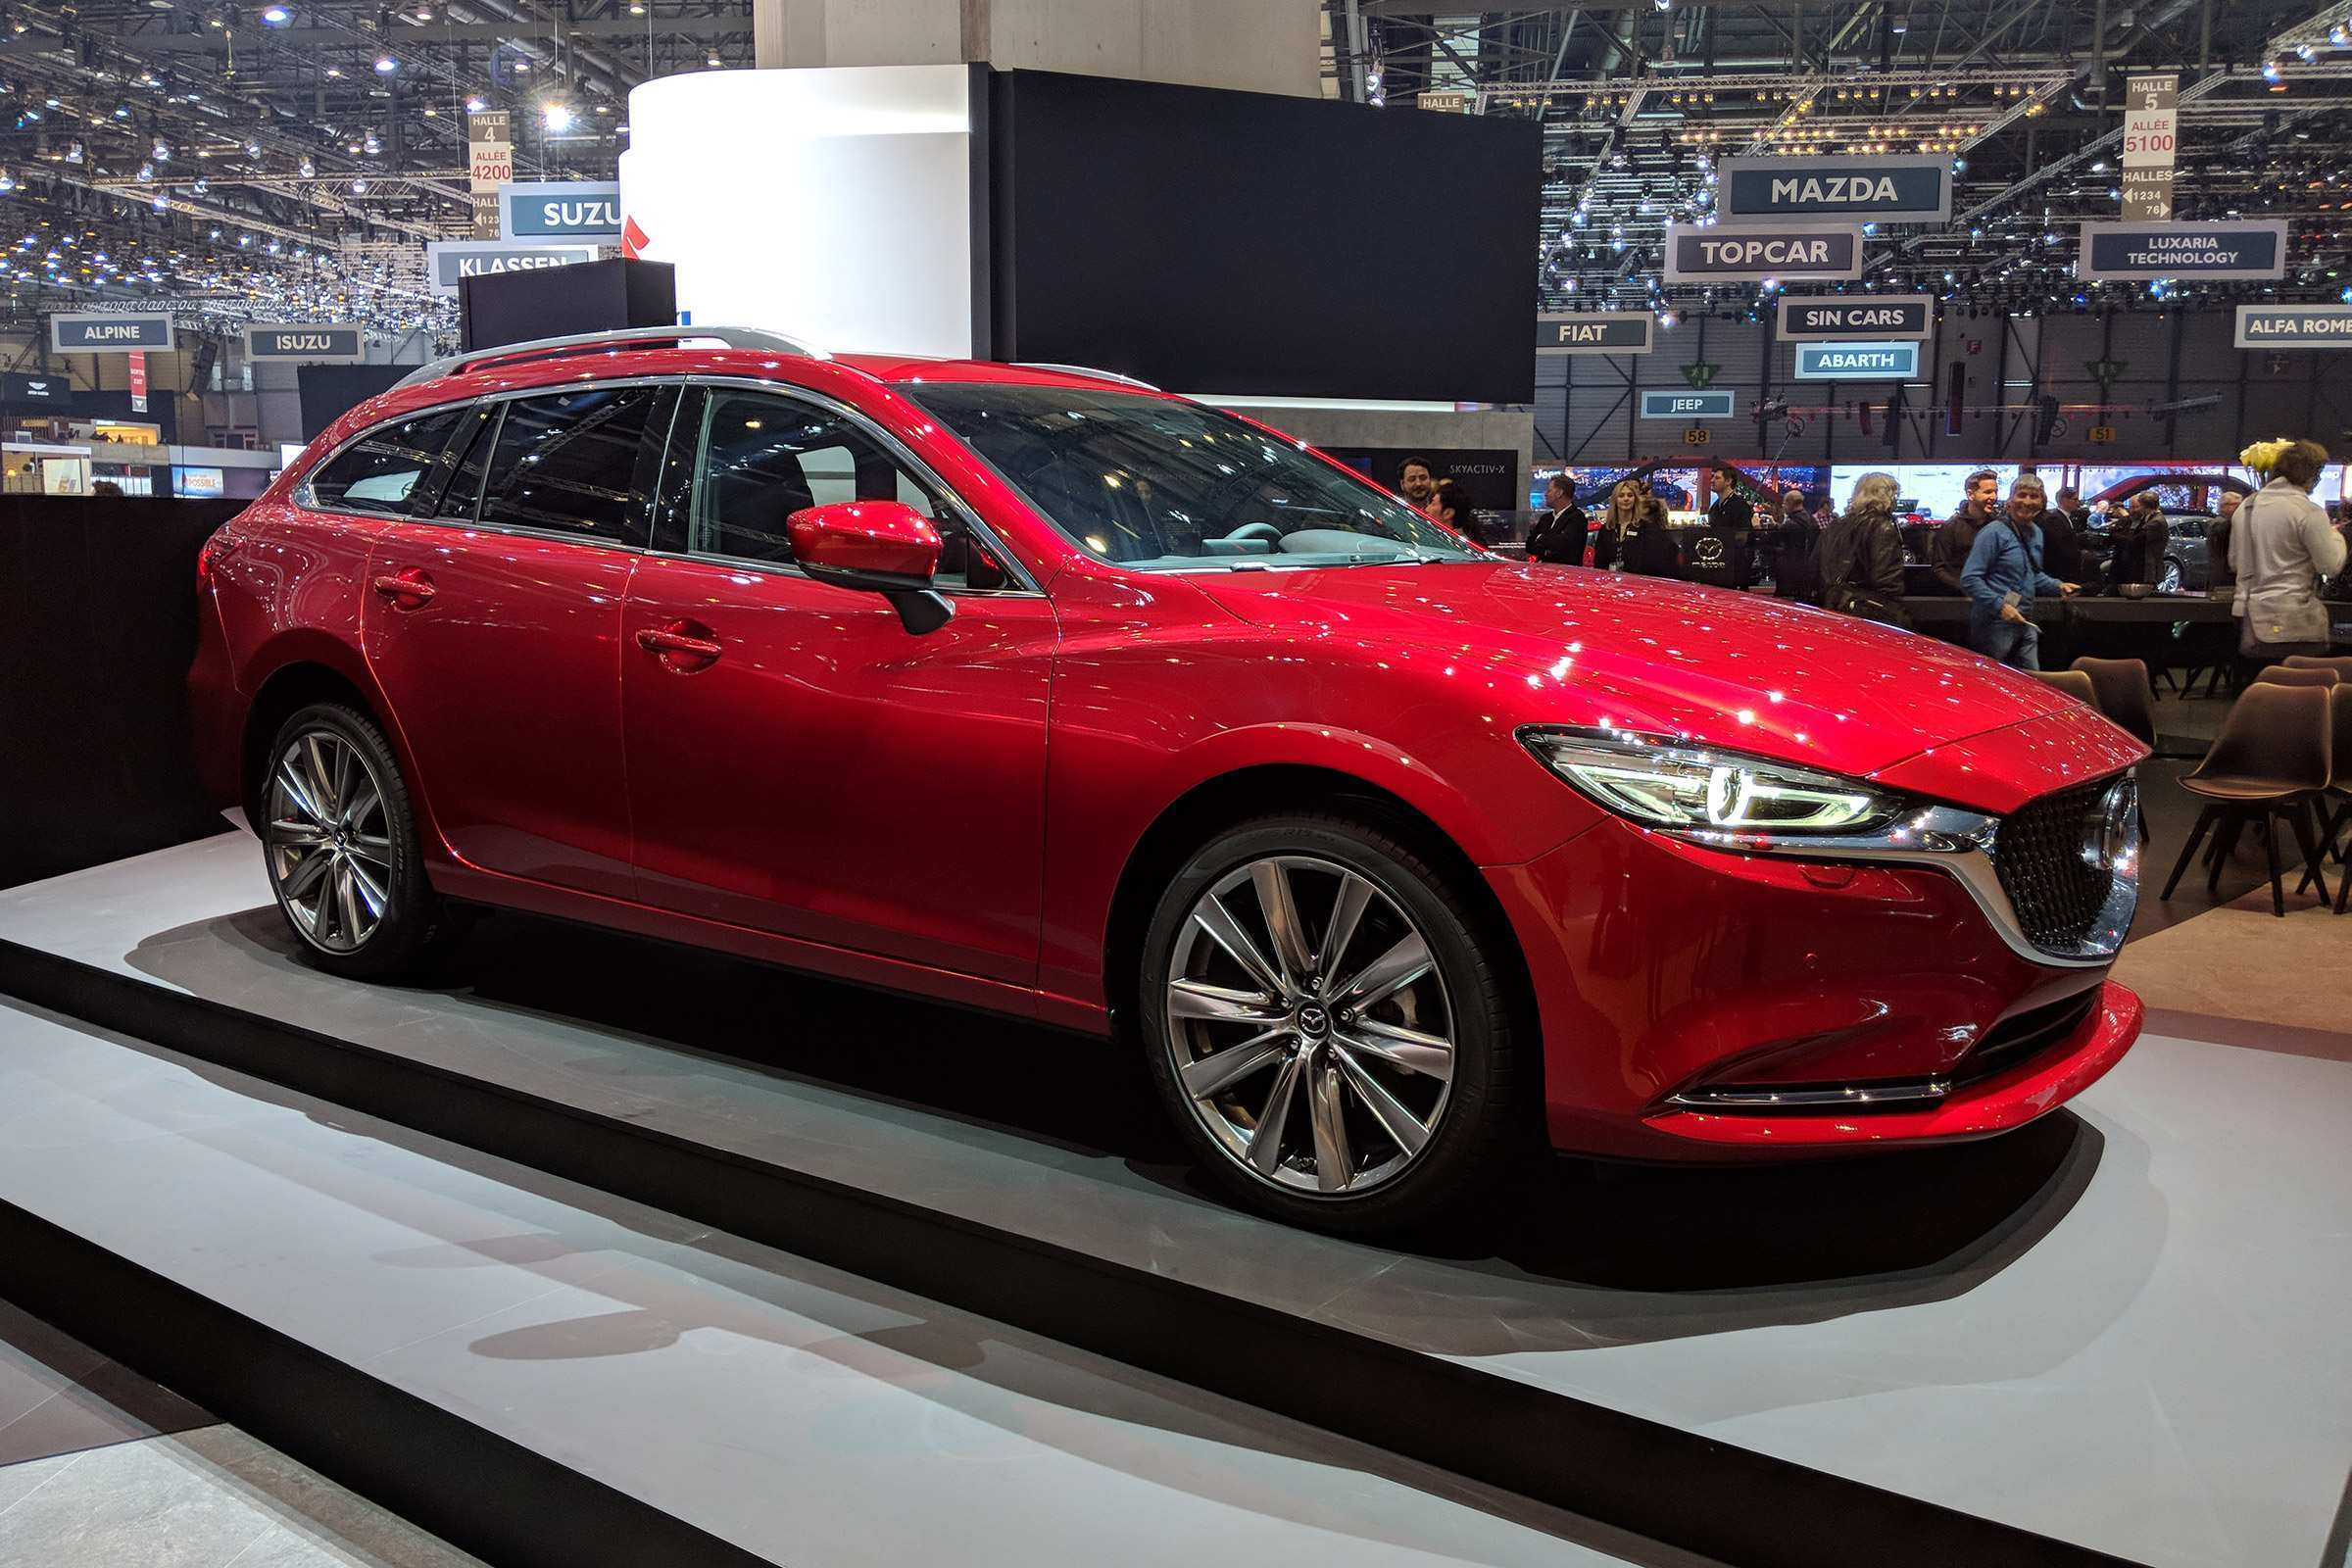 95 The Mazda 6 2019 Europe Concept Redesign And Review Redesign and Concept for Mazda 6 2019 Europe Concept Redesign And Review